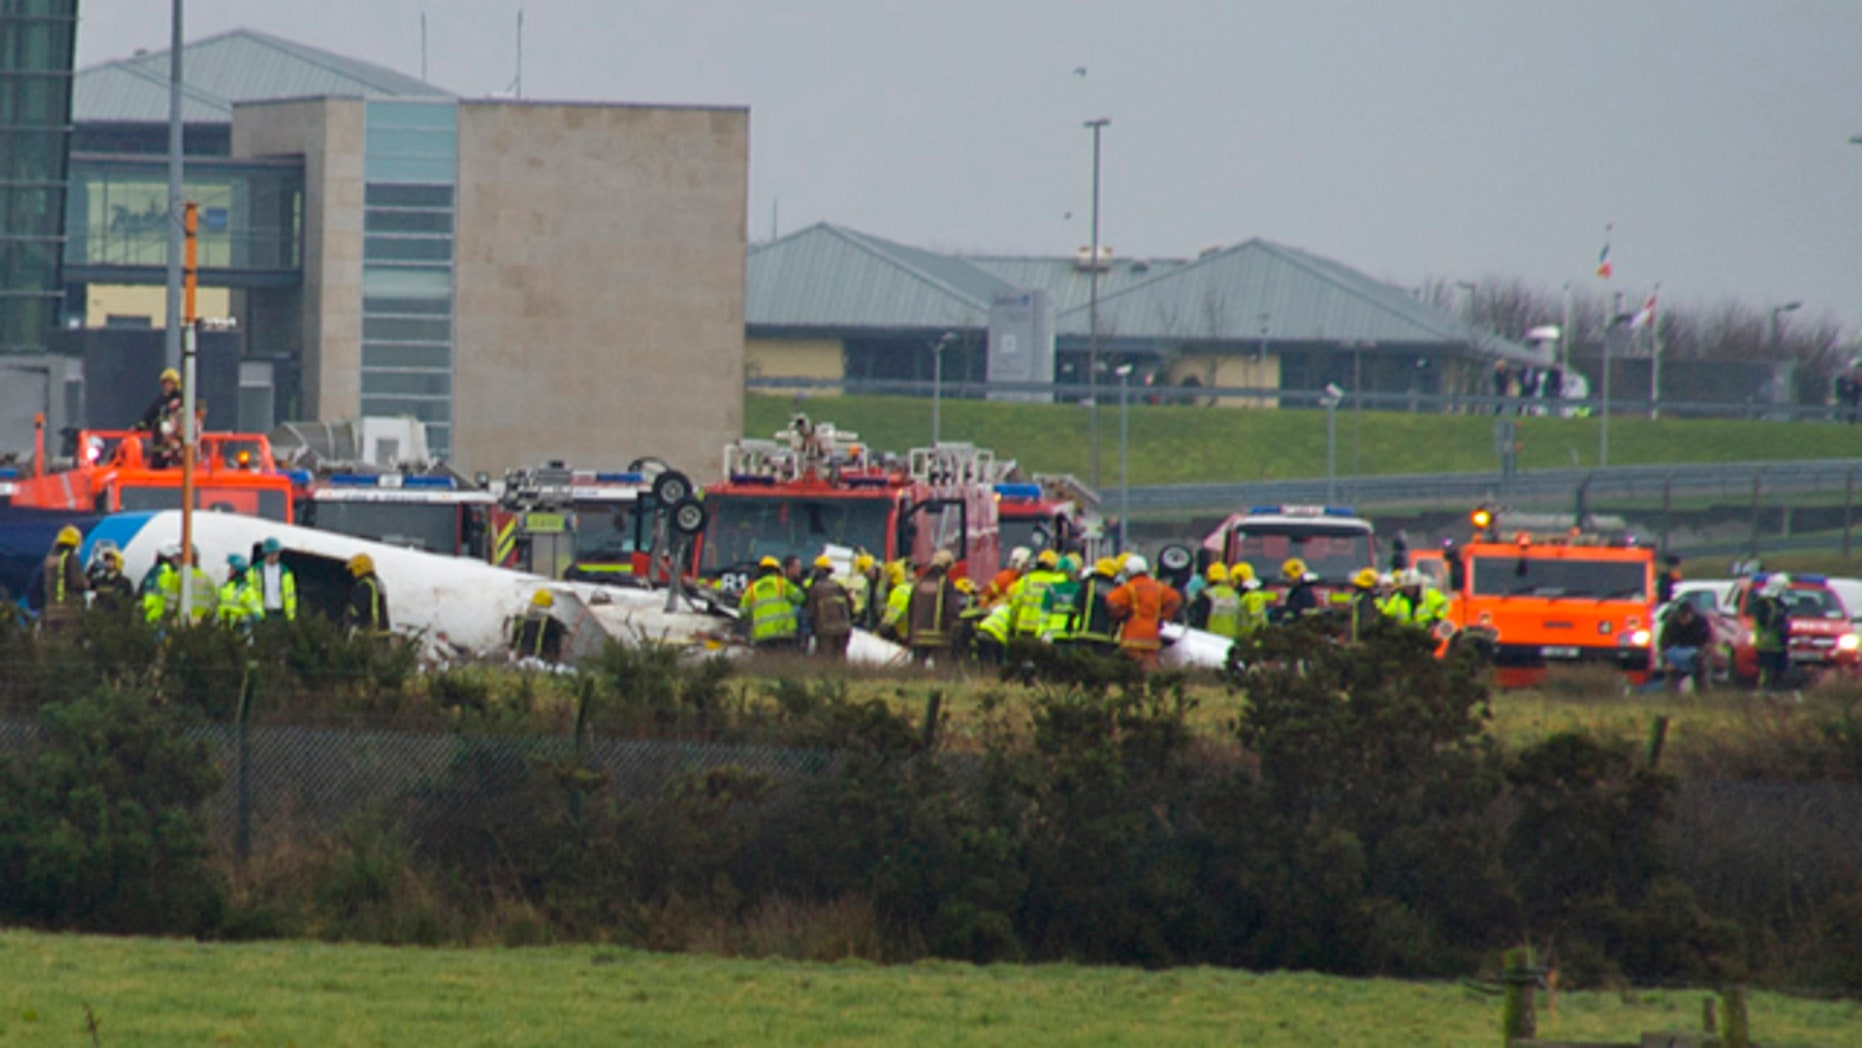 Feb. 10: Emergency services attend the scene after a small commuter aircraft carrying 12 people crashed as it tried to land in heavy fog at Cork Airport in southwest Ireland.